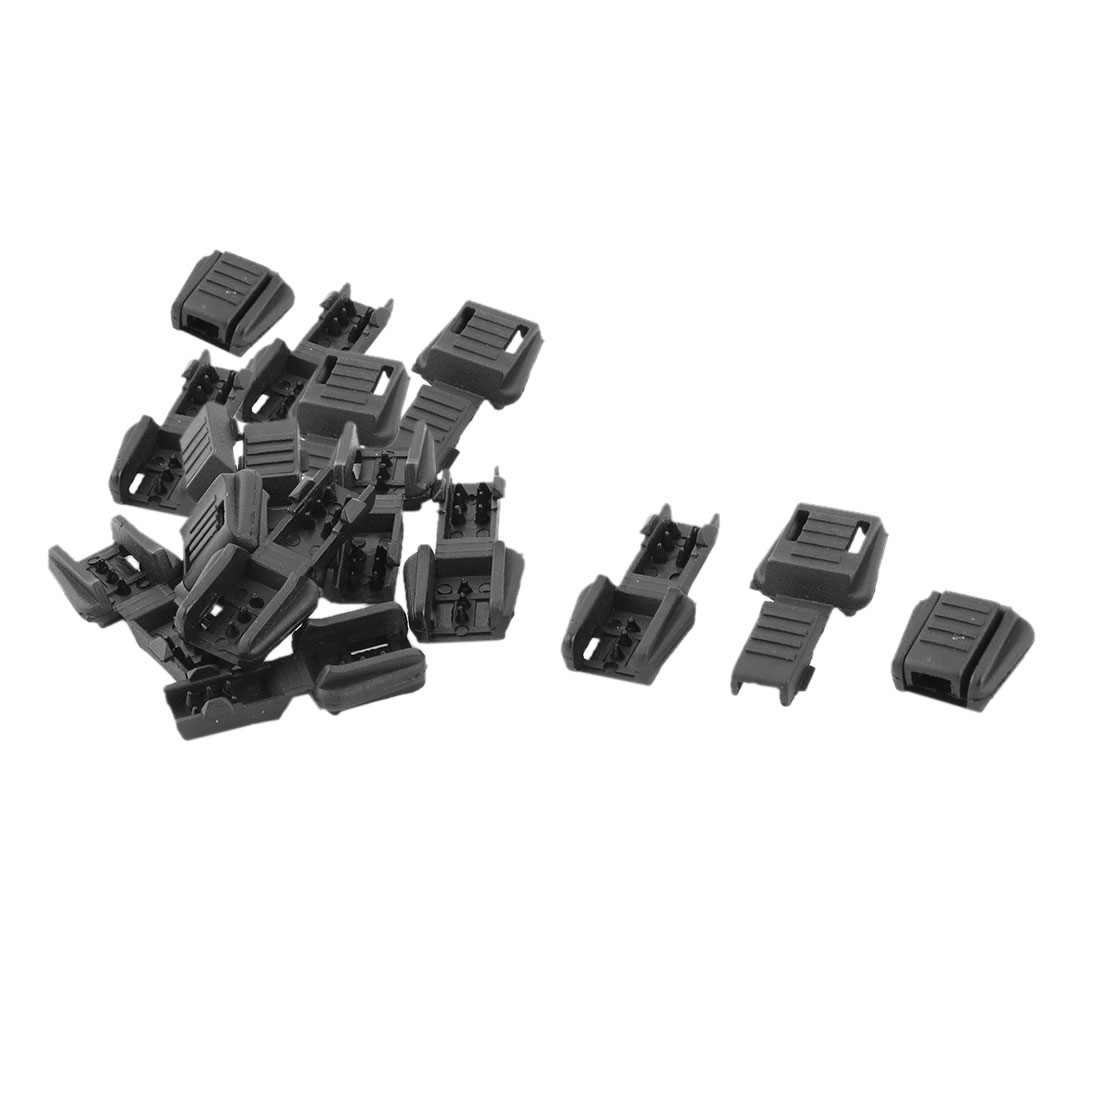 Plastic Single Hole Clothing Cord Rope Lock Clip Clamp Stopper Fastener Black 15pcs